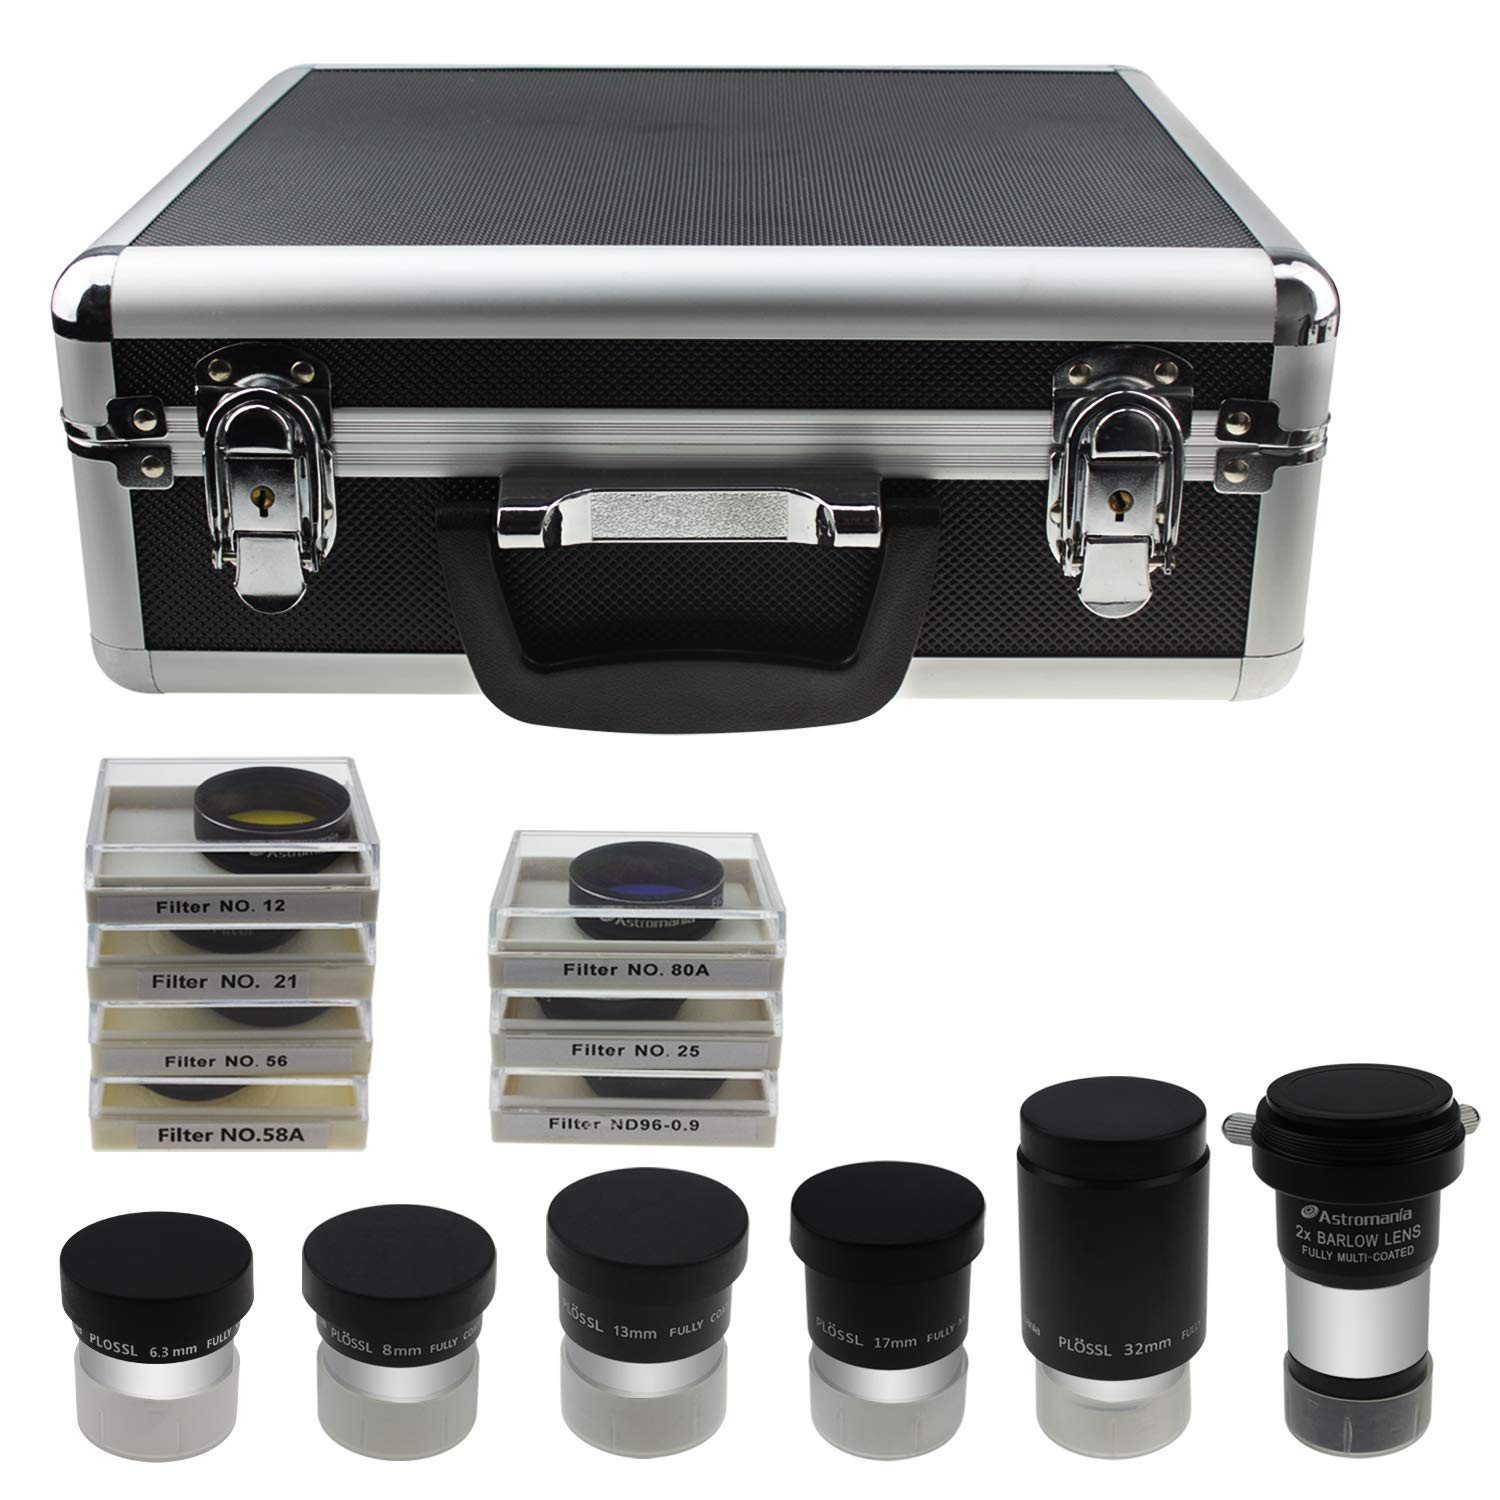 Eyepiece and Filter Kits